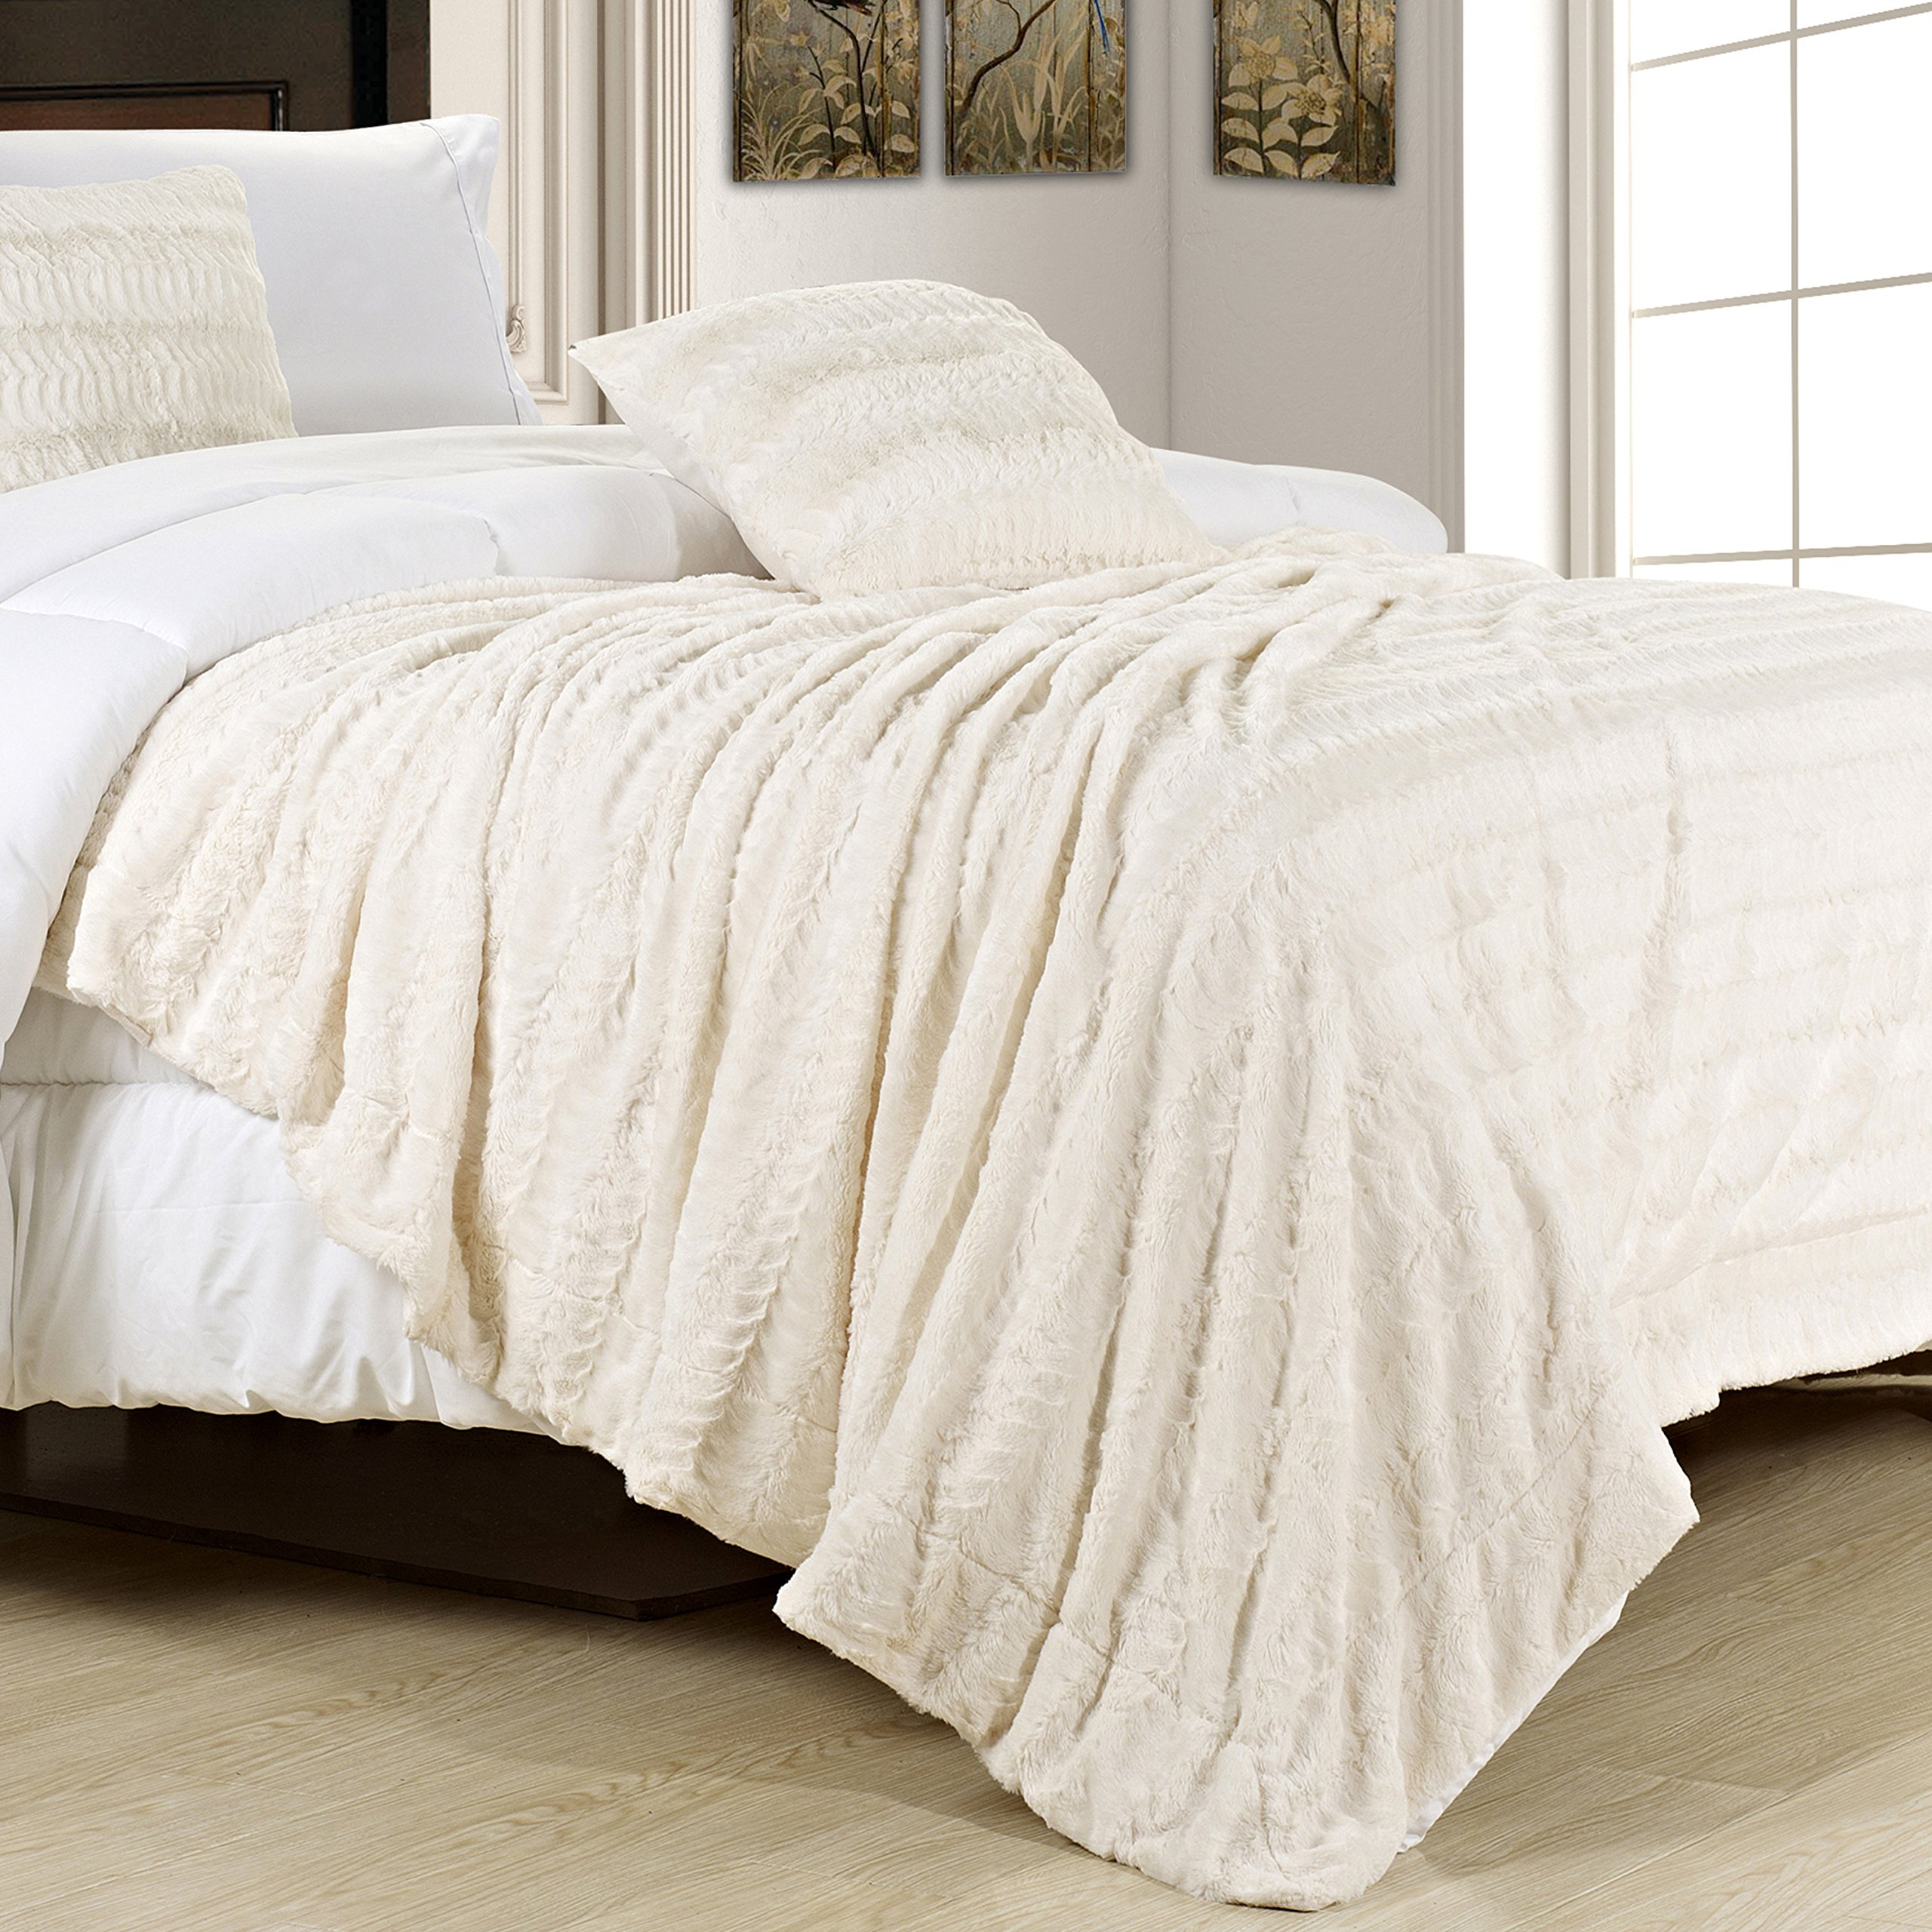 Cheap Faux Fur Bedding King find Faux Fur Bedding King deals on